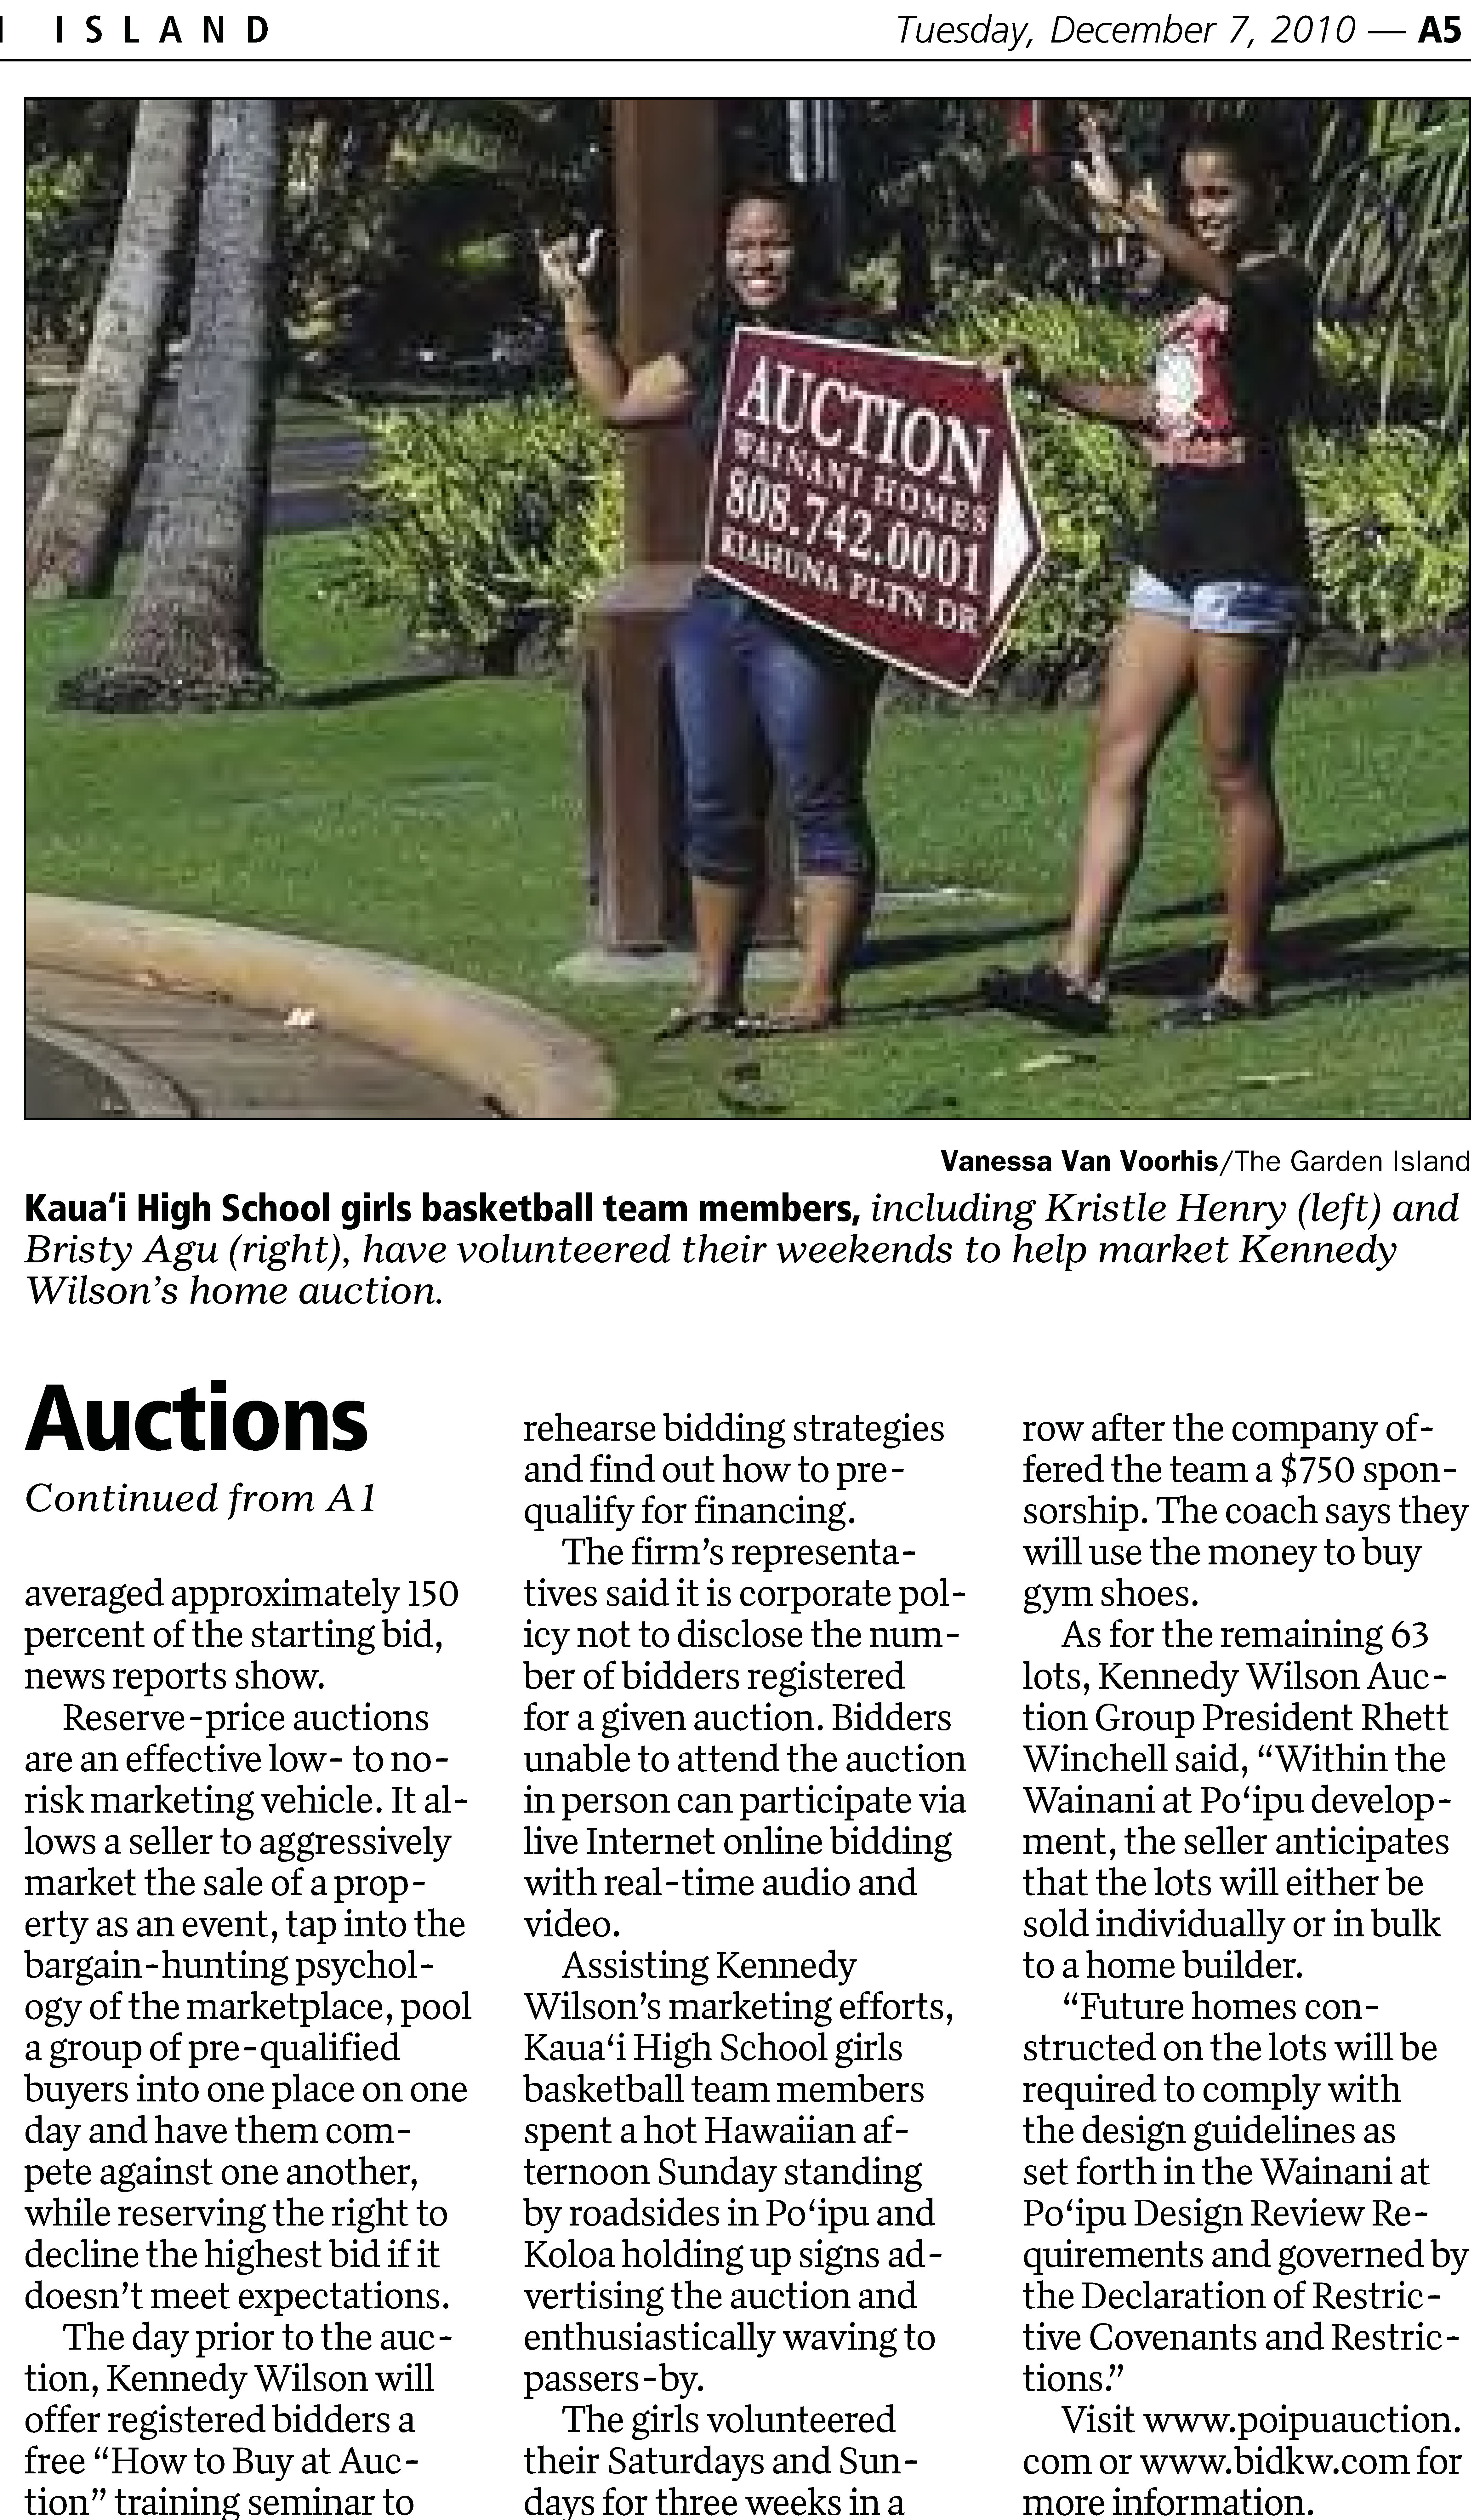 Kennedy Wilson Auction Group Featured In The Garden Island